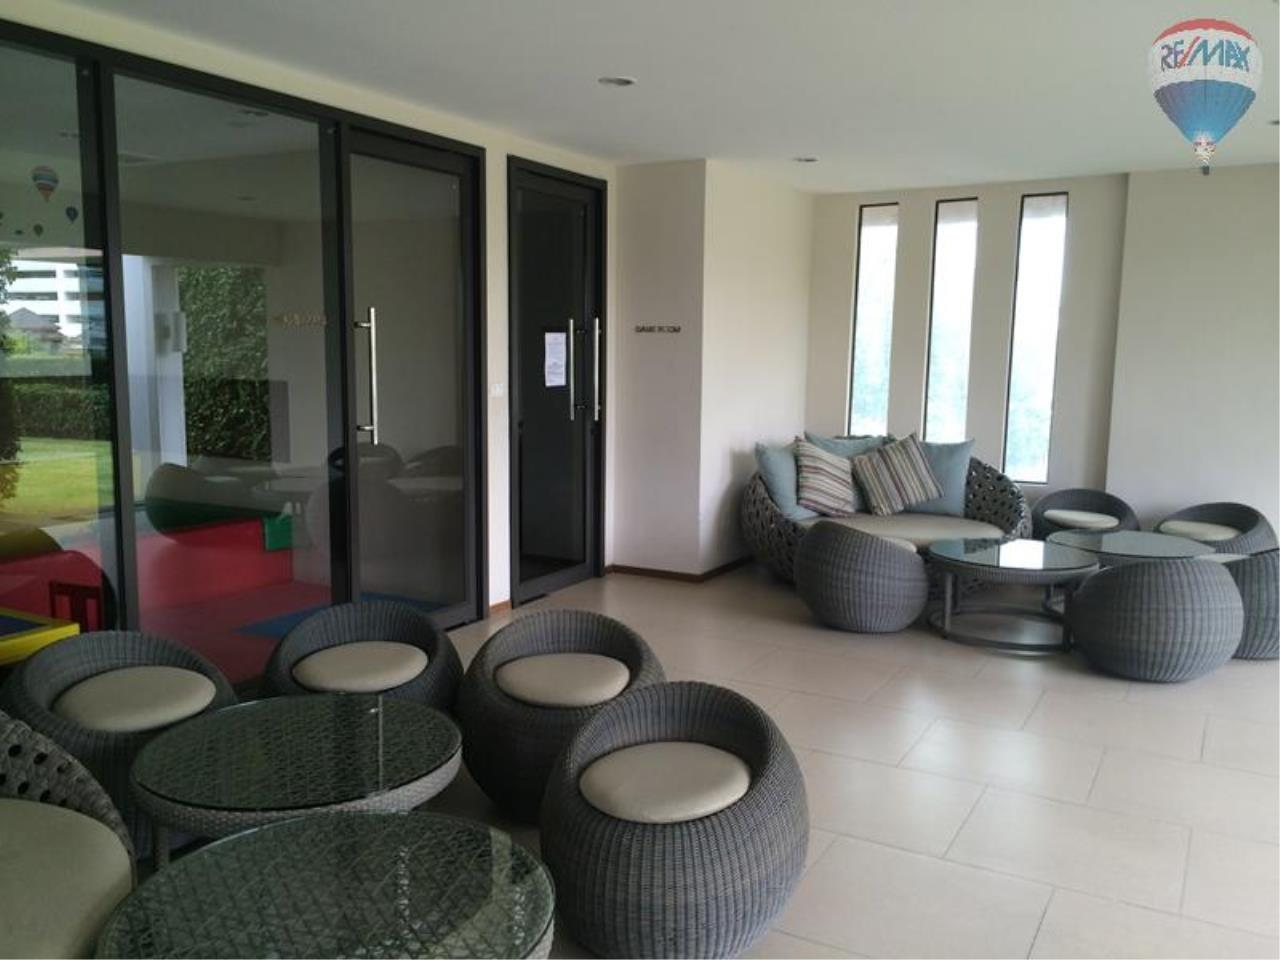 RE/MAX Properties Agency's Condo for RENT 2B/2B on Asoke, 86 sq.m., good view close to Airport link 23